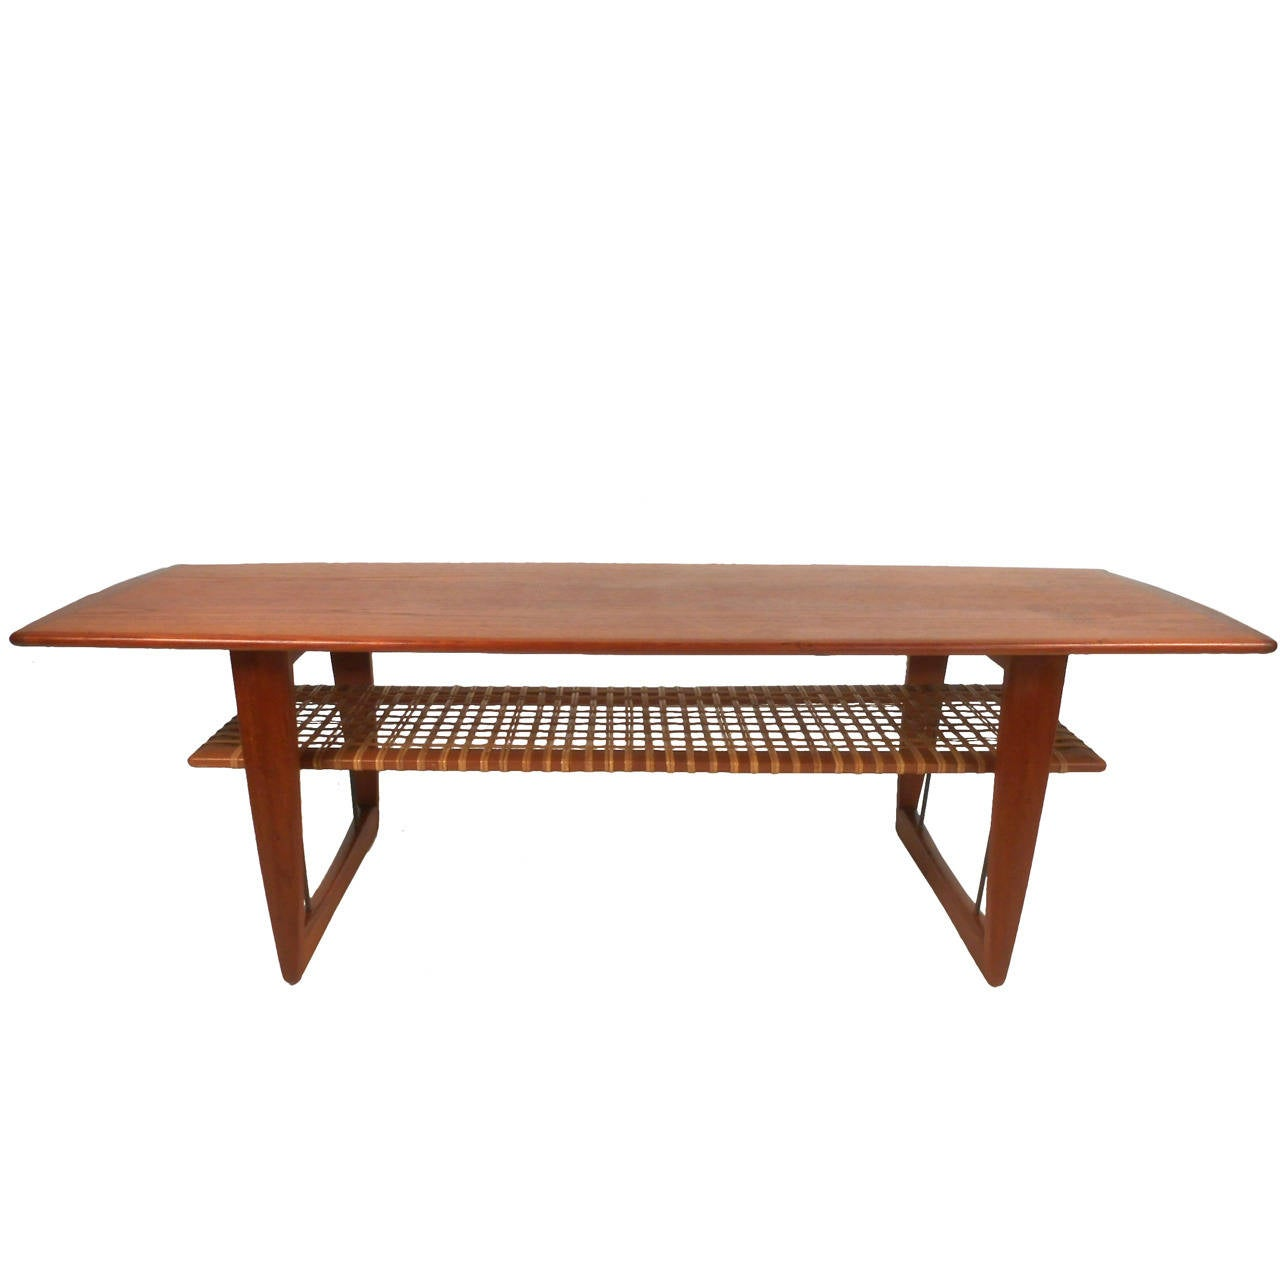 Mid Century Danish Teak Cane Shelf Coffee Table In The Style Of Peter Hvidt For Sale At 1stdibs